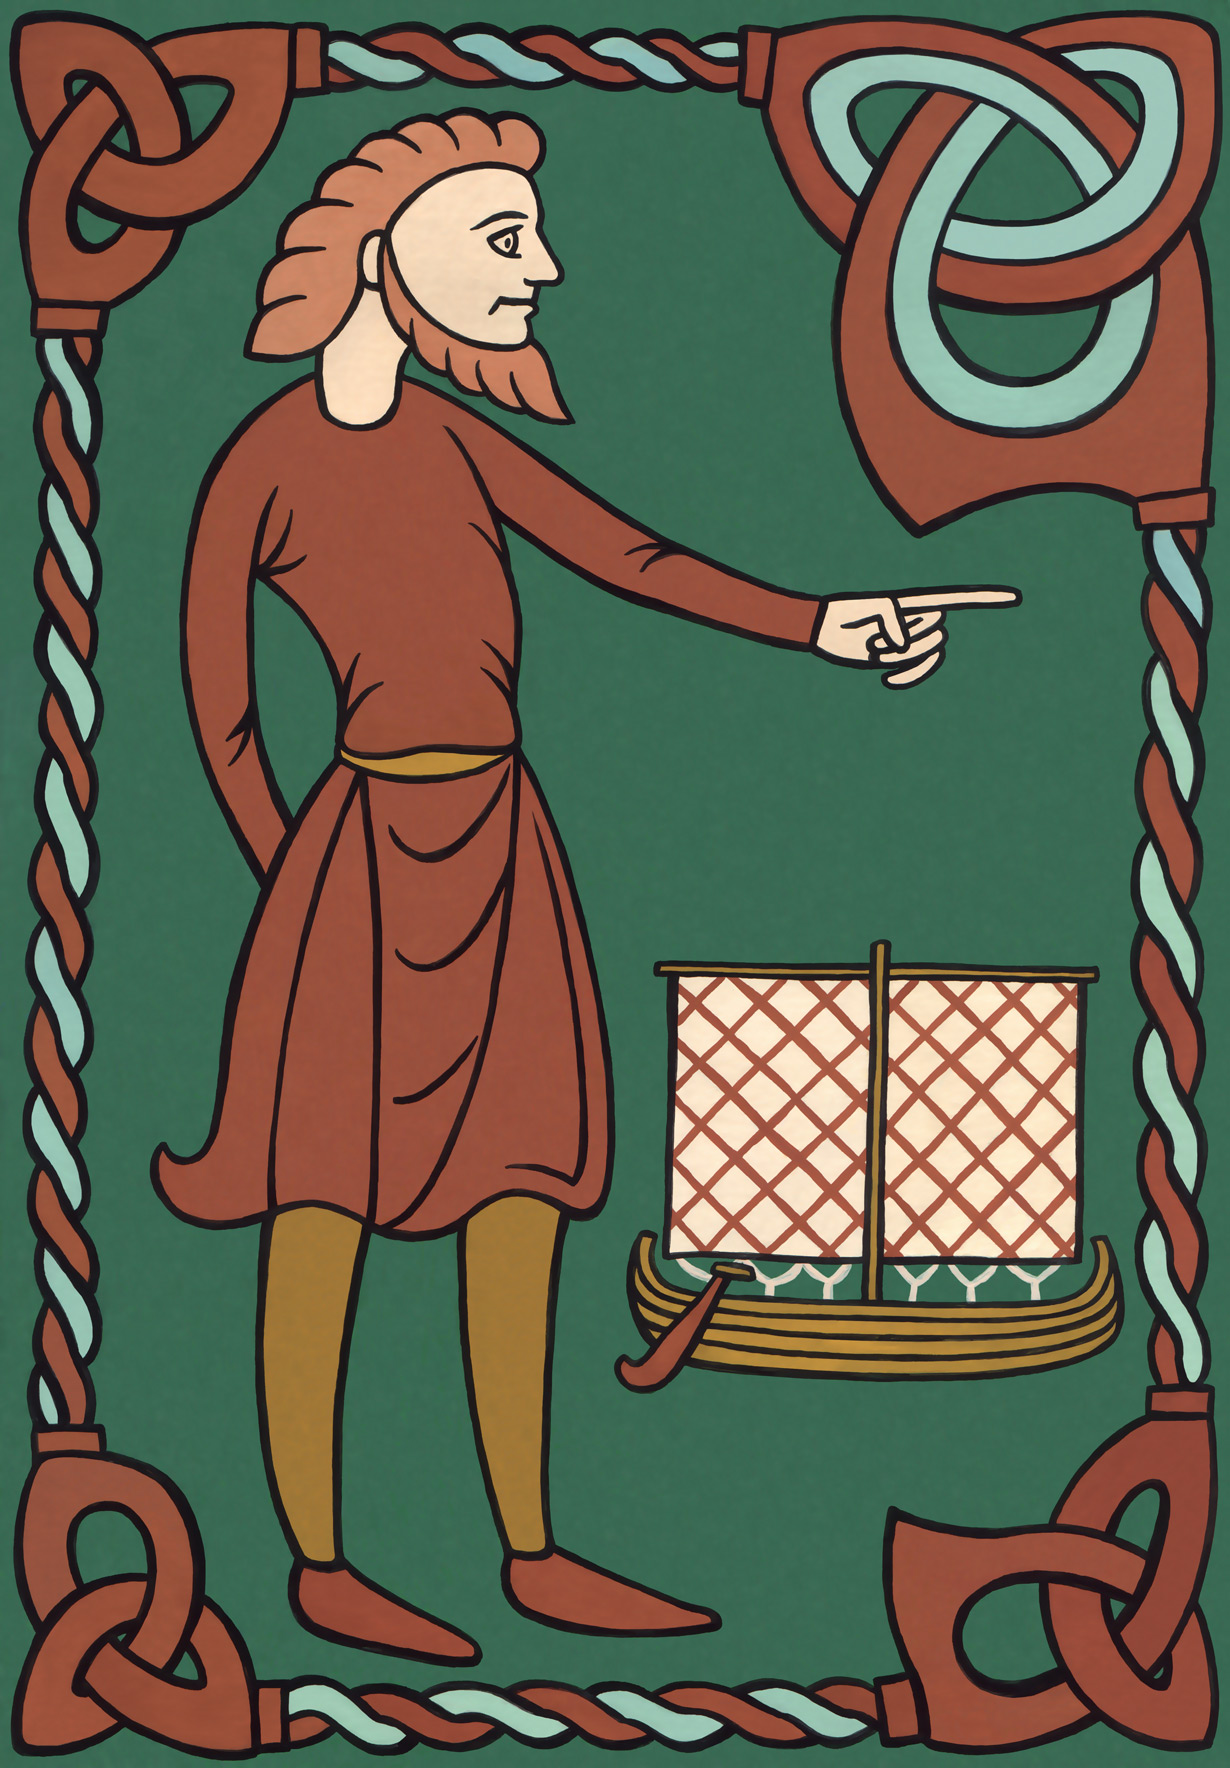 The reconstructed portrait of Leif Ericsson